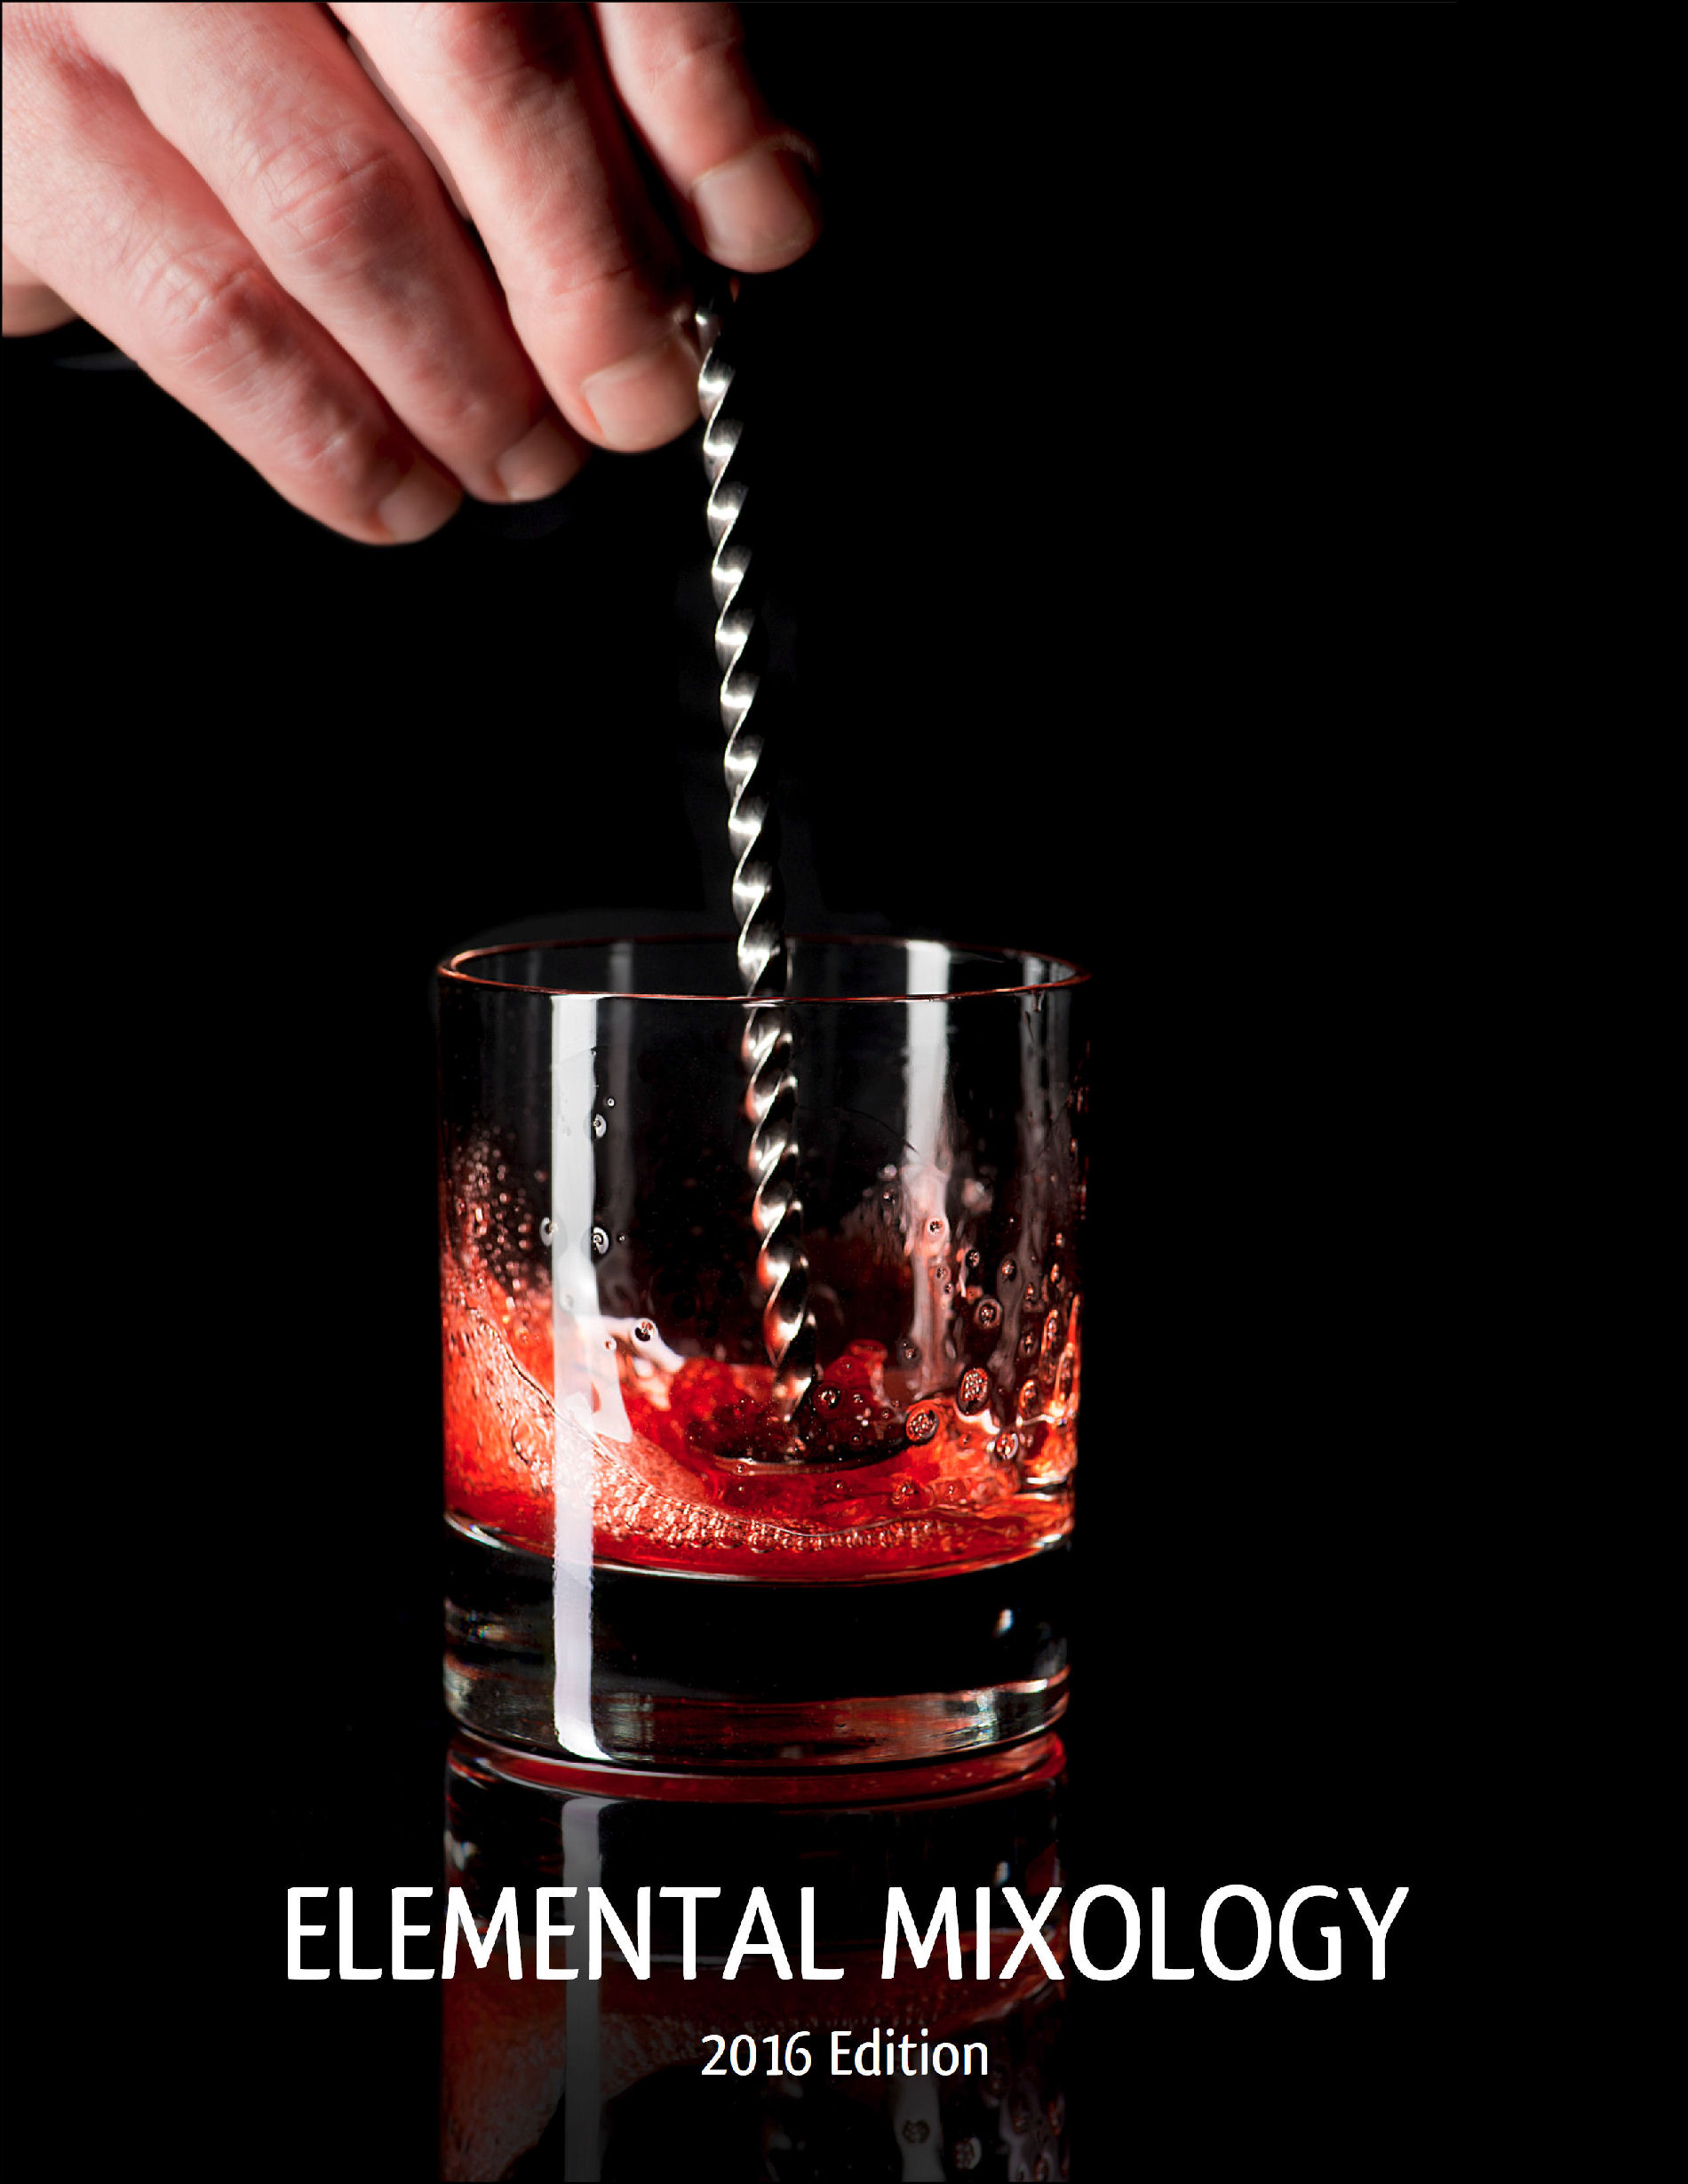 The Elemental Mixology Book